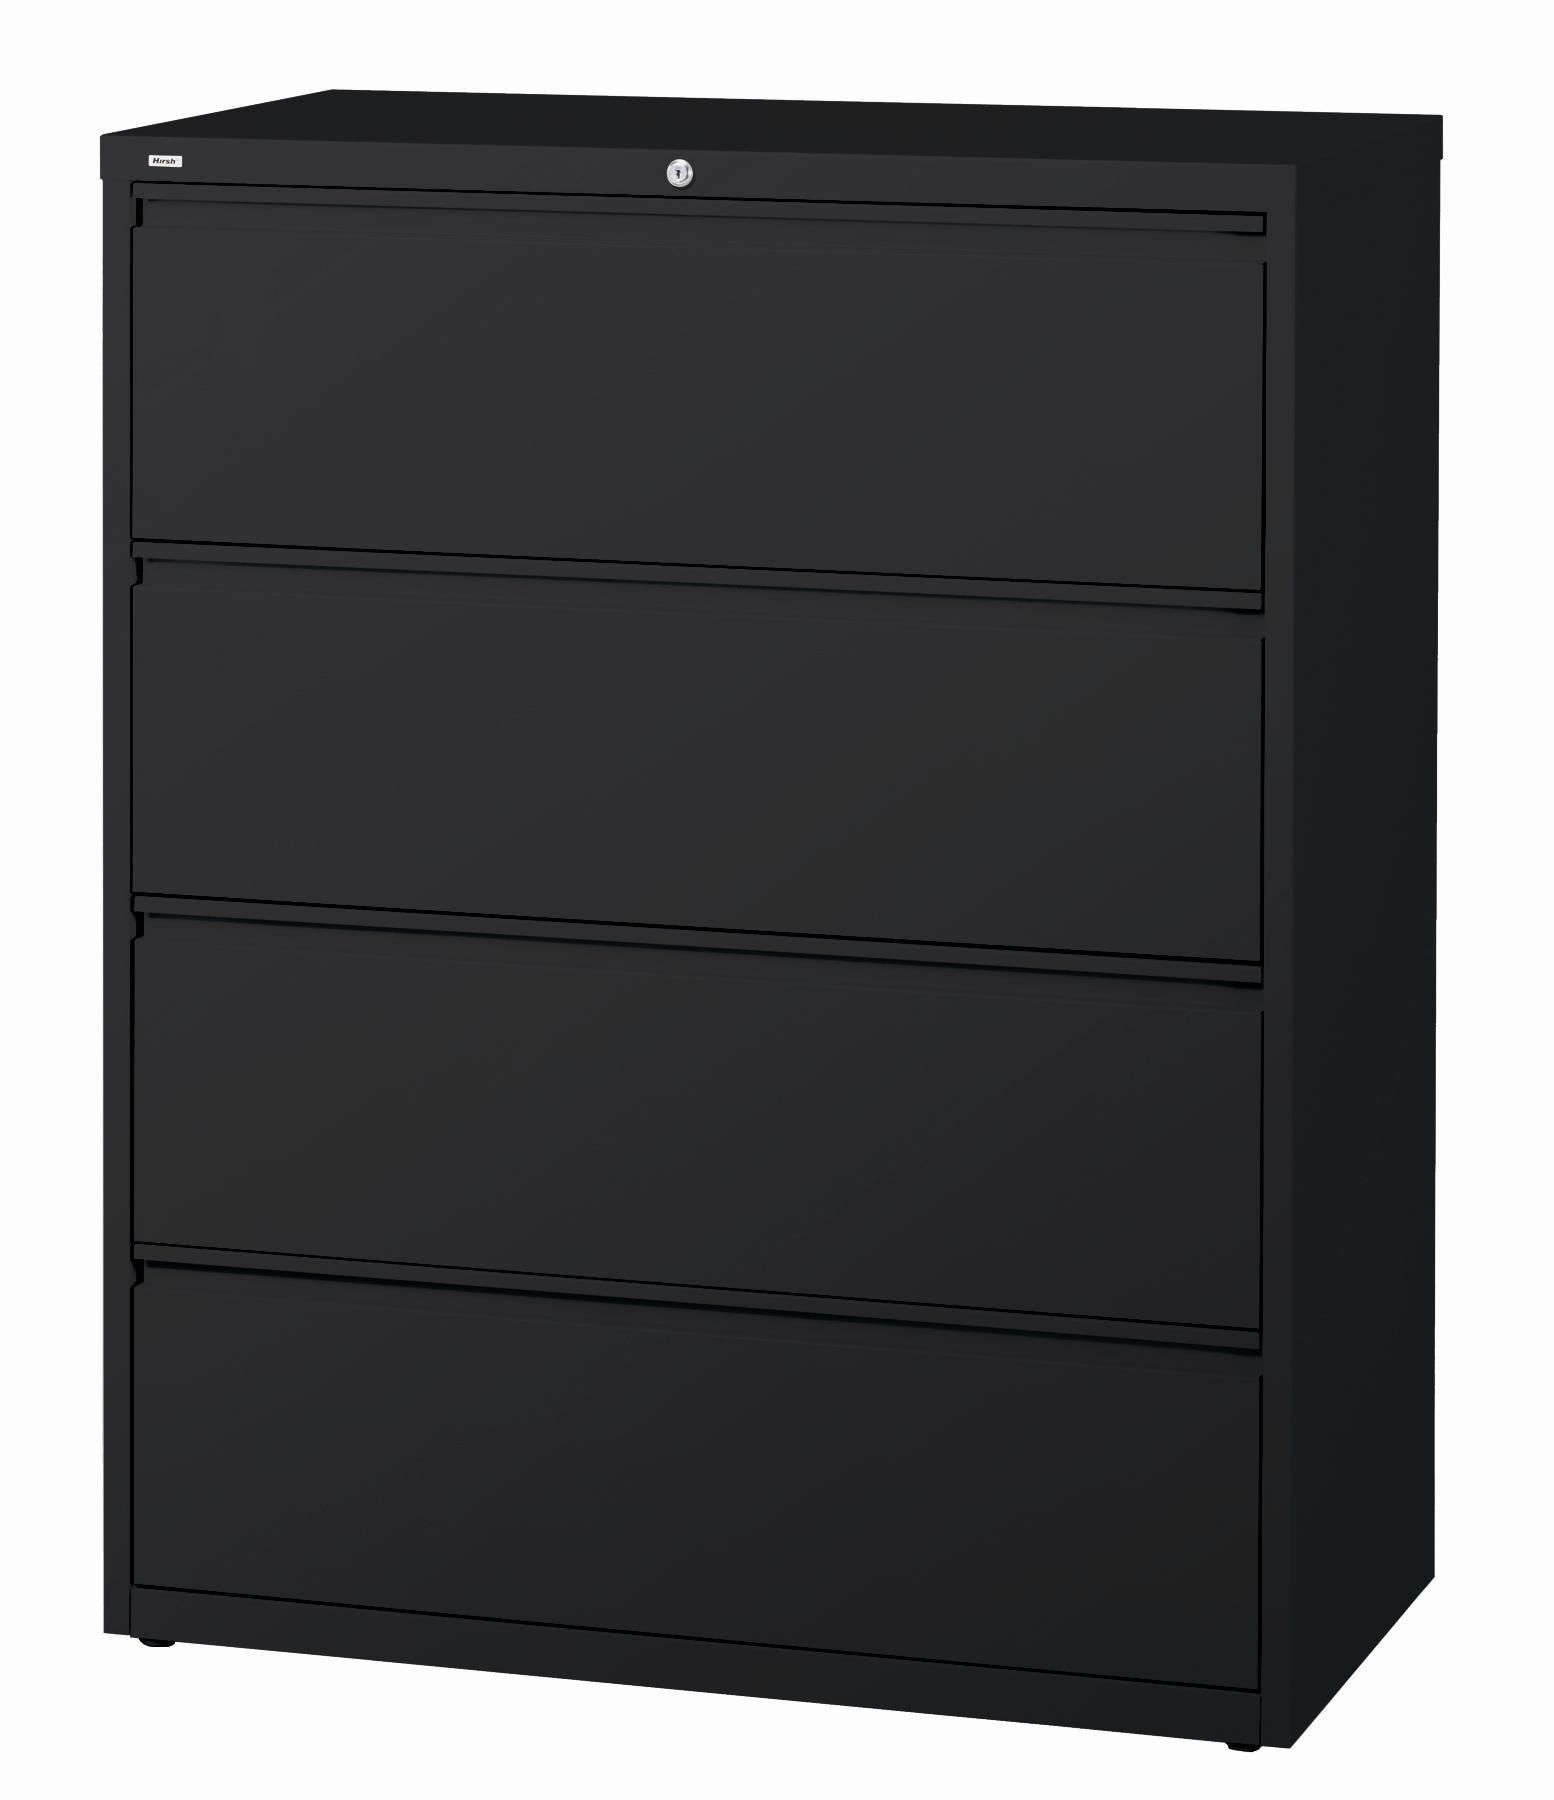 Shop Hirsh HL10000 Series 42 Inch Wide 4 Drawer Commercial Lateral File  Cabinet   Free Shipping Today   Overstock.com   5862843